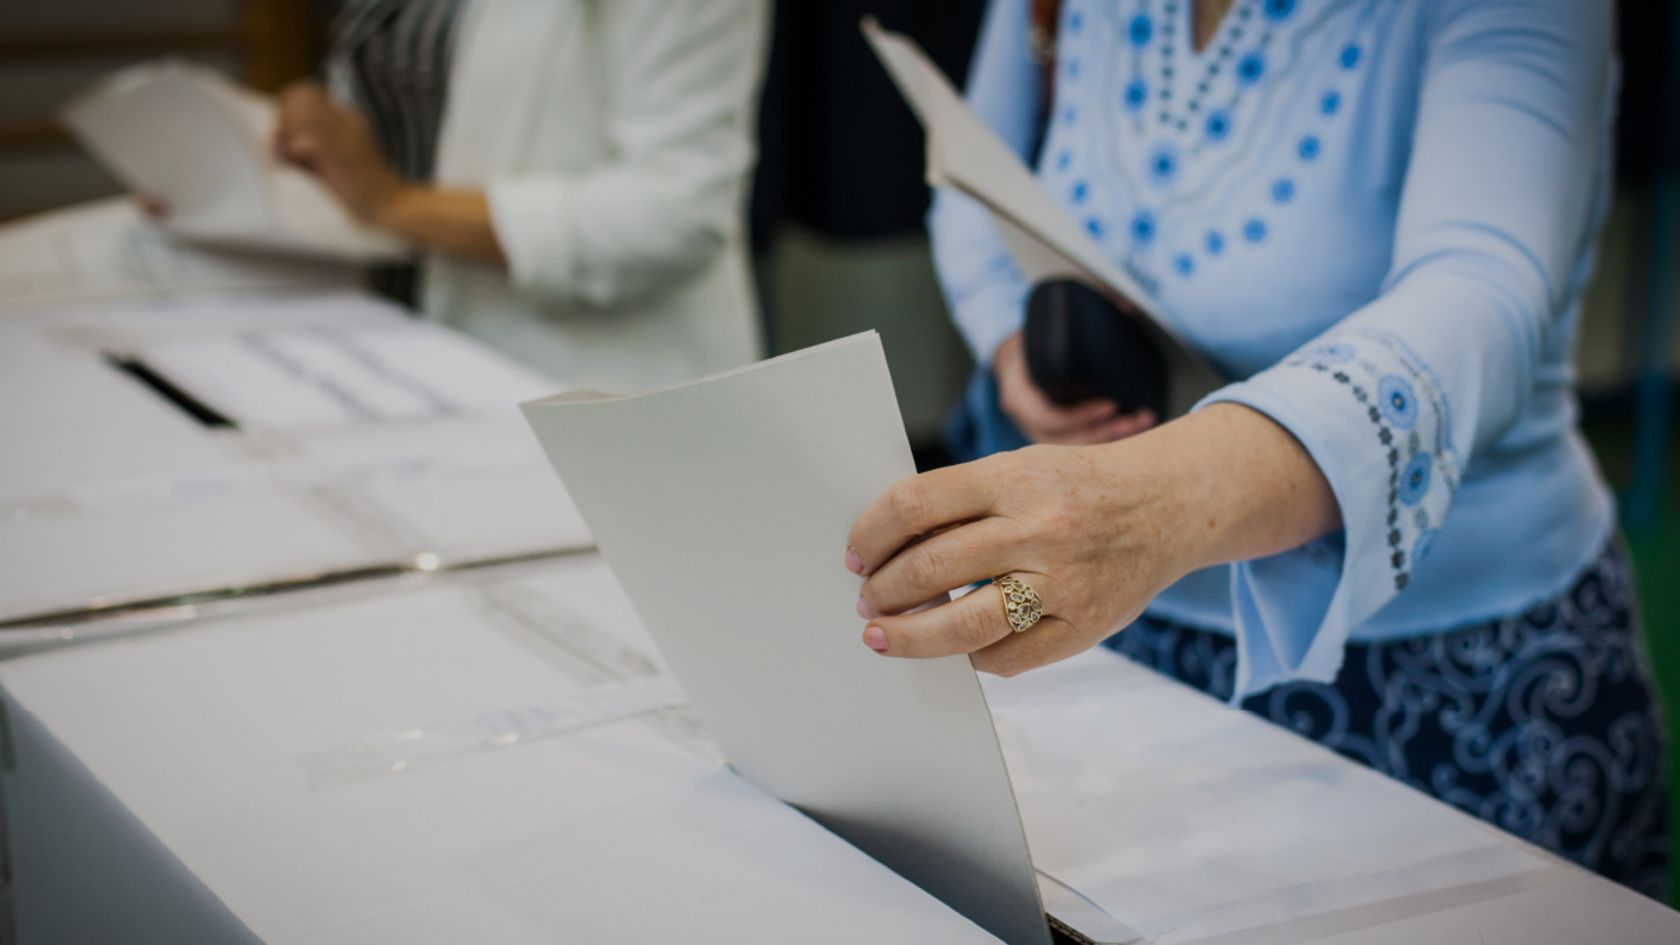 Canada's federal election will take place on September 20, how will it affect Canadian immigration and policies, find out!